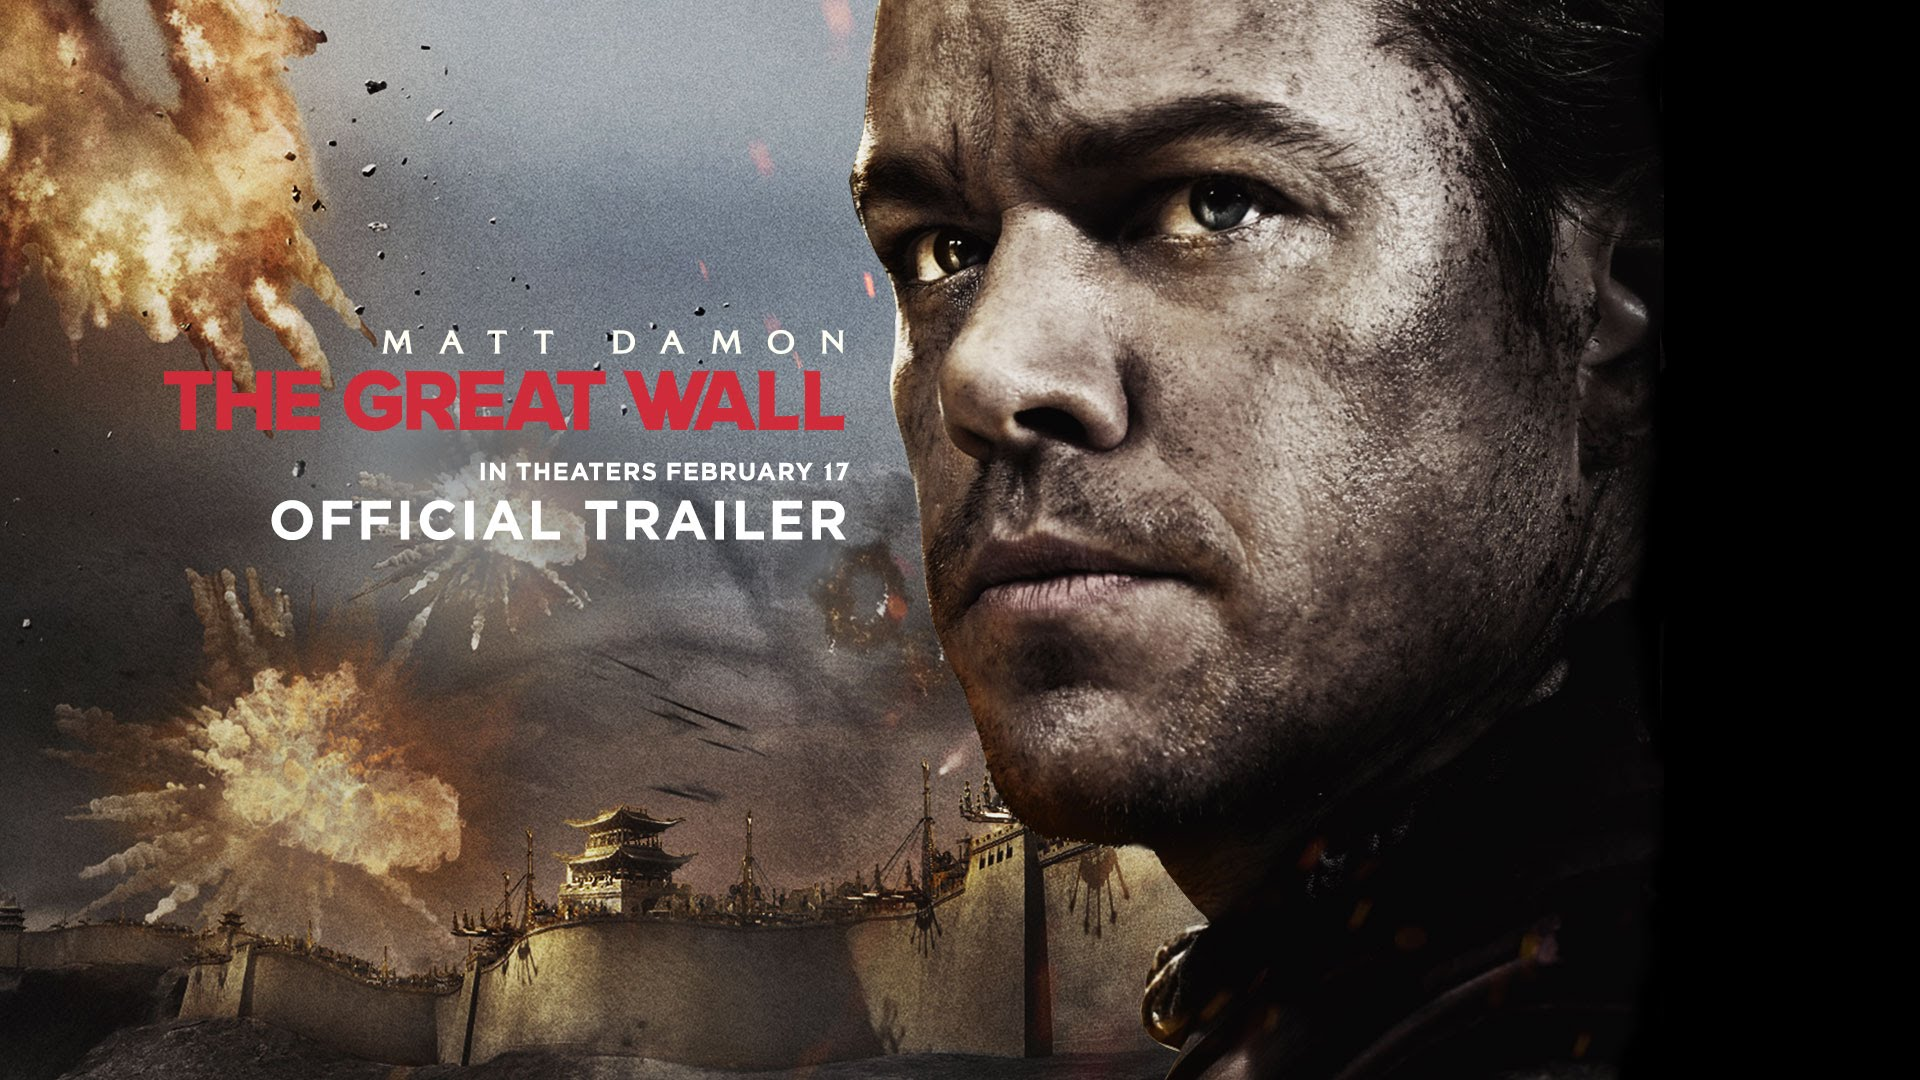 The Great Wall - Official Trailer (HD)